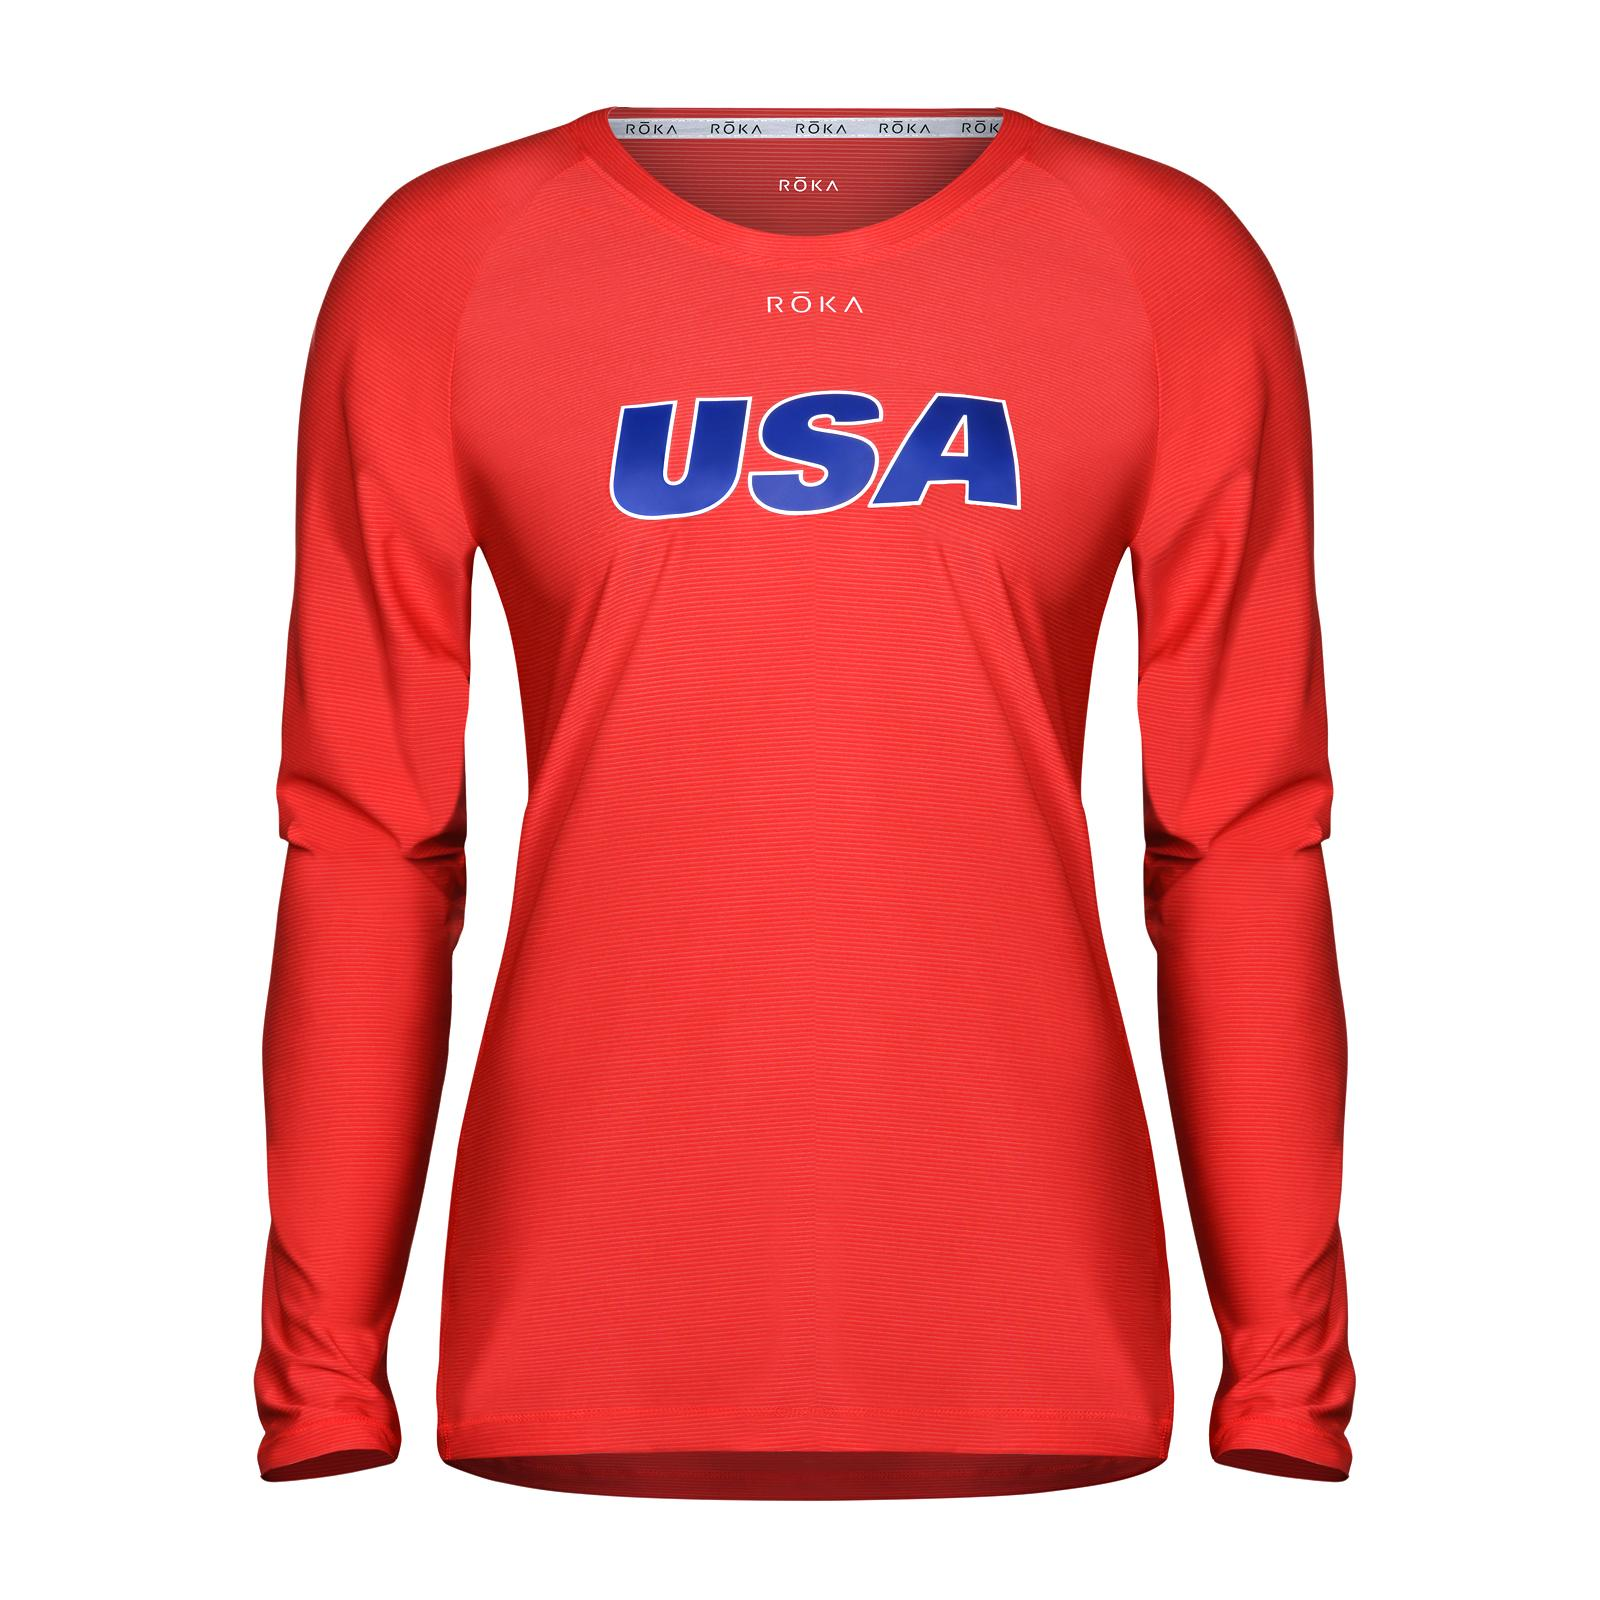 Women's USA Long-Sleeve Tech Tee - Red